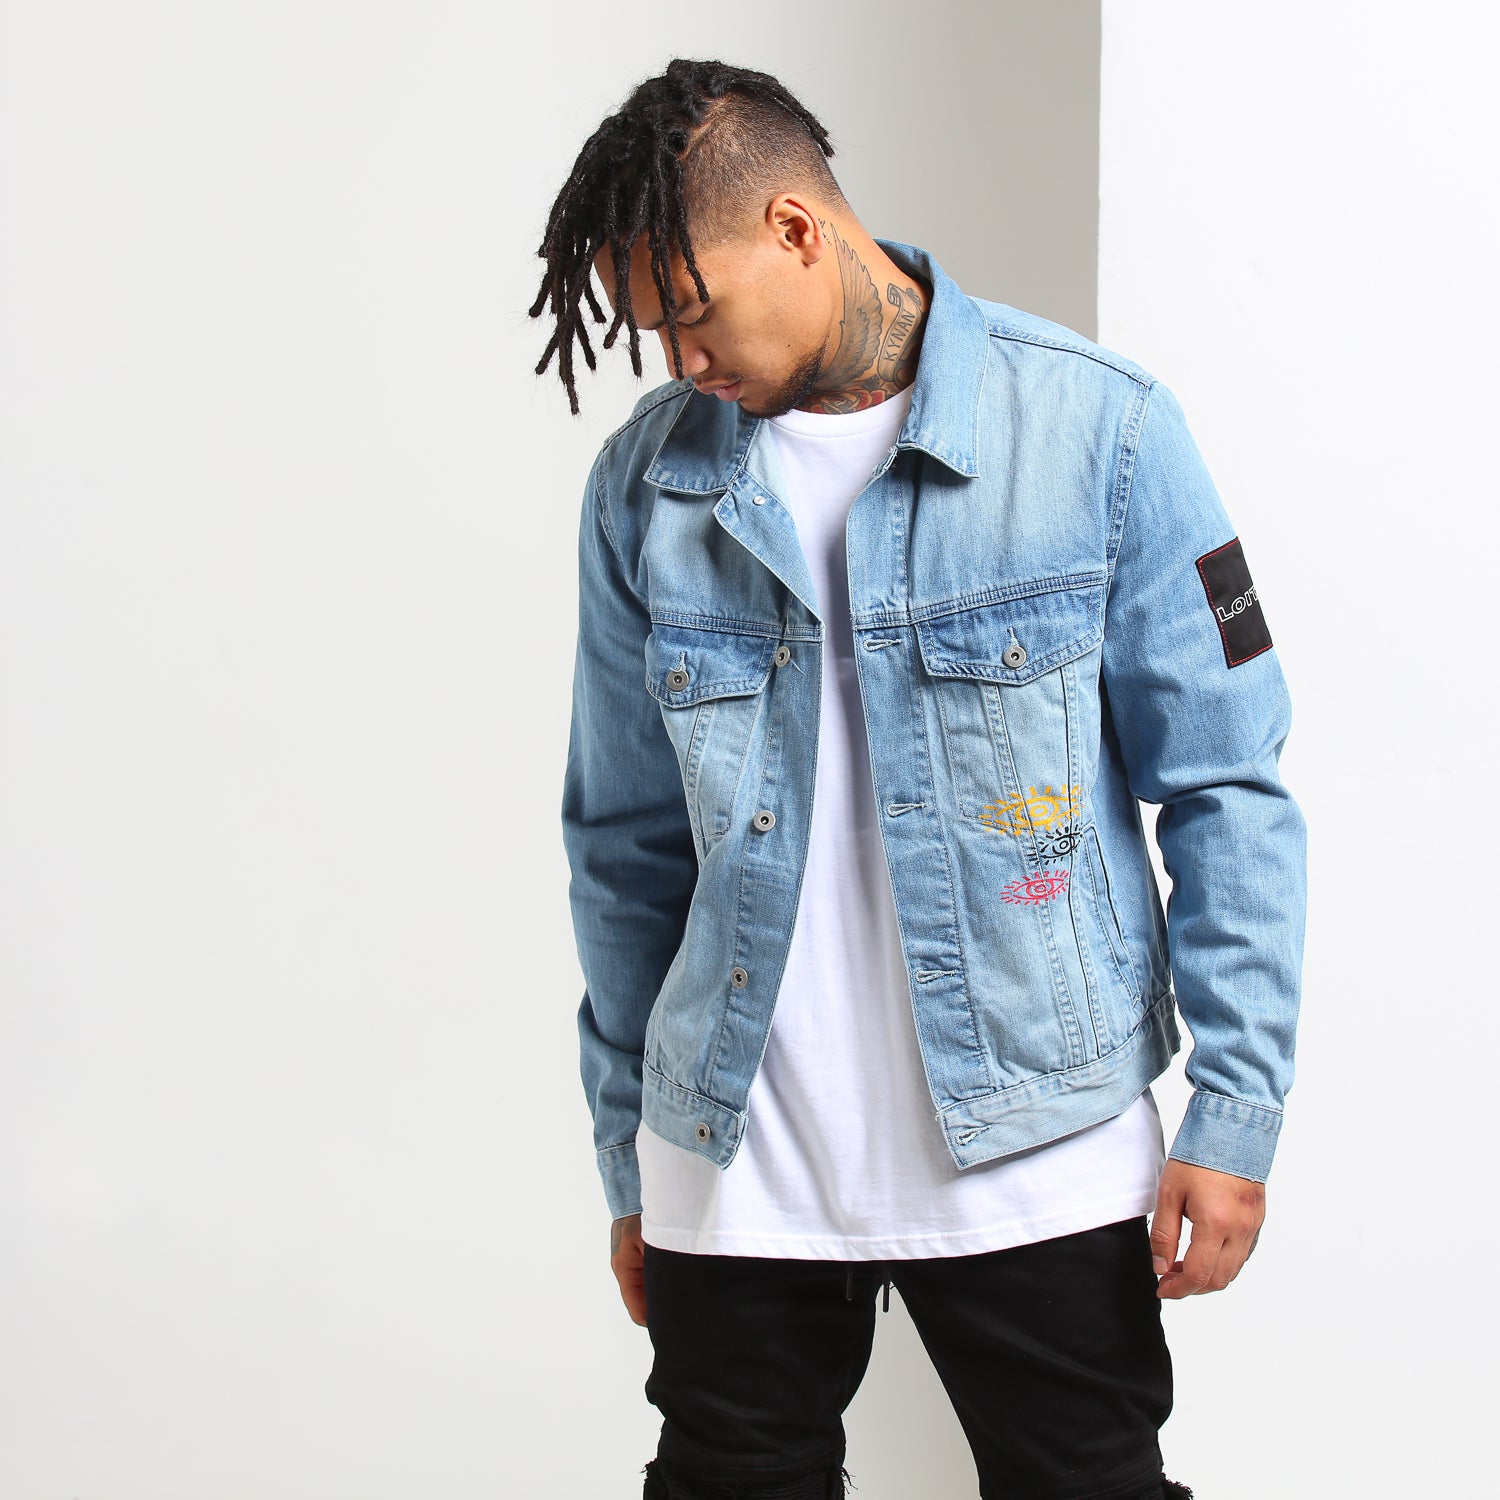 ALL SEEING DENIM JKT - Blue/Denim